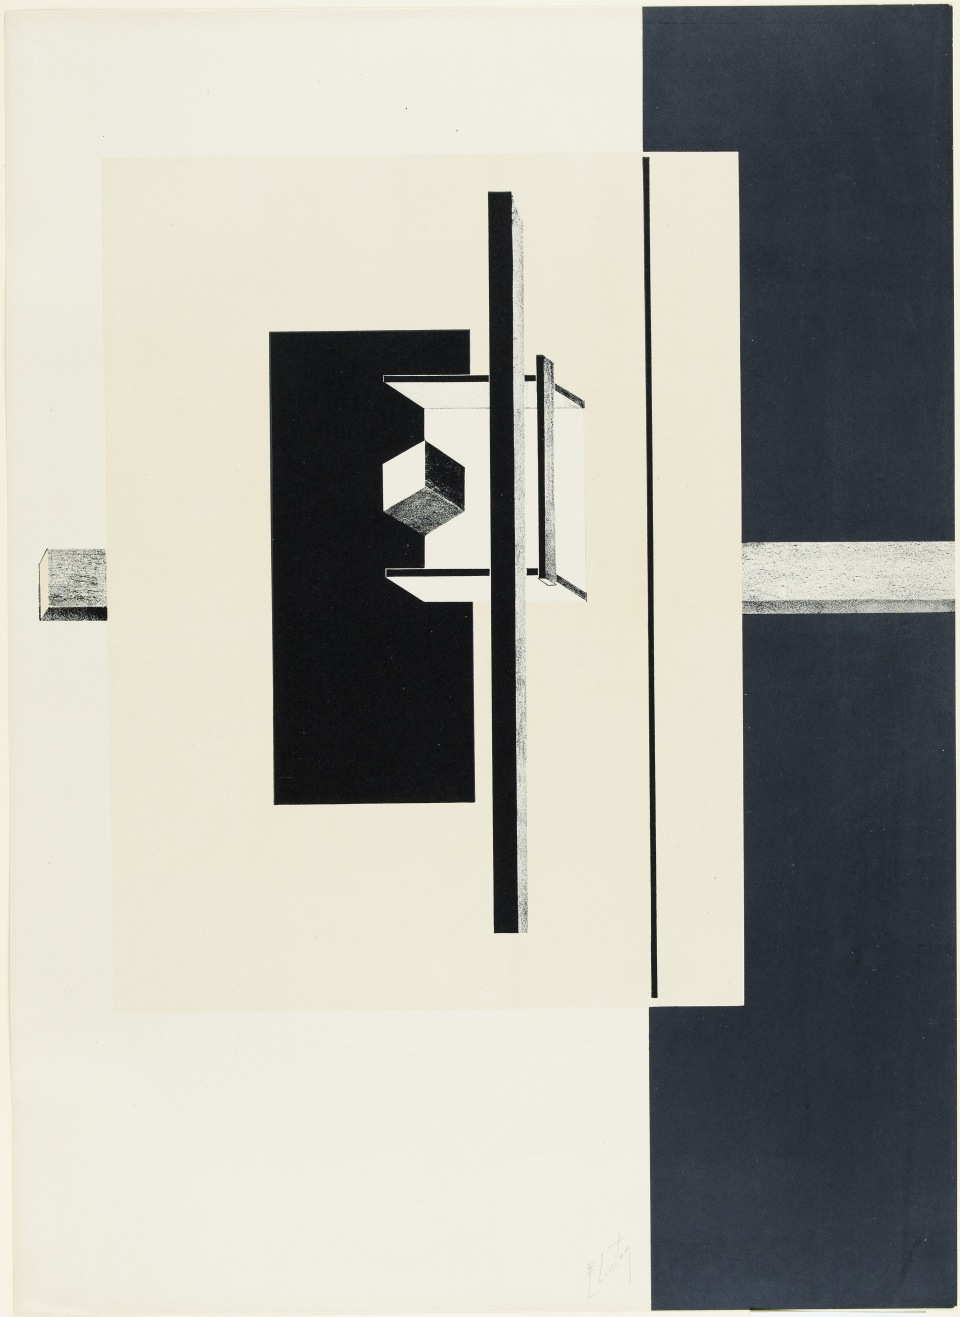 El Lissitzky -1o Kestnermappe Proun [Proun. 1st Kestner Portfolio] Published 1923 Scottish National Gallery of Modern Art, Edinburgh © the Artist. All rights reserved.